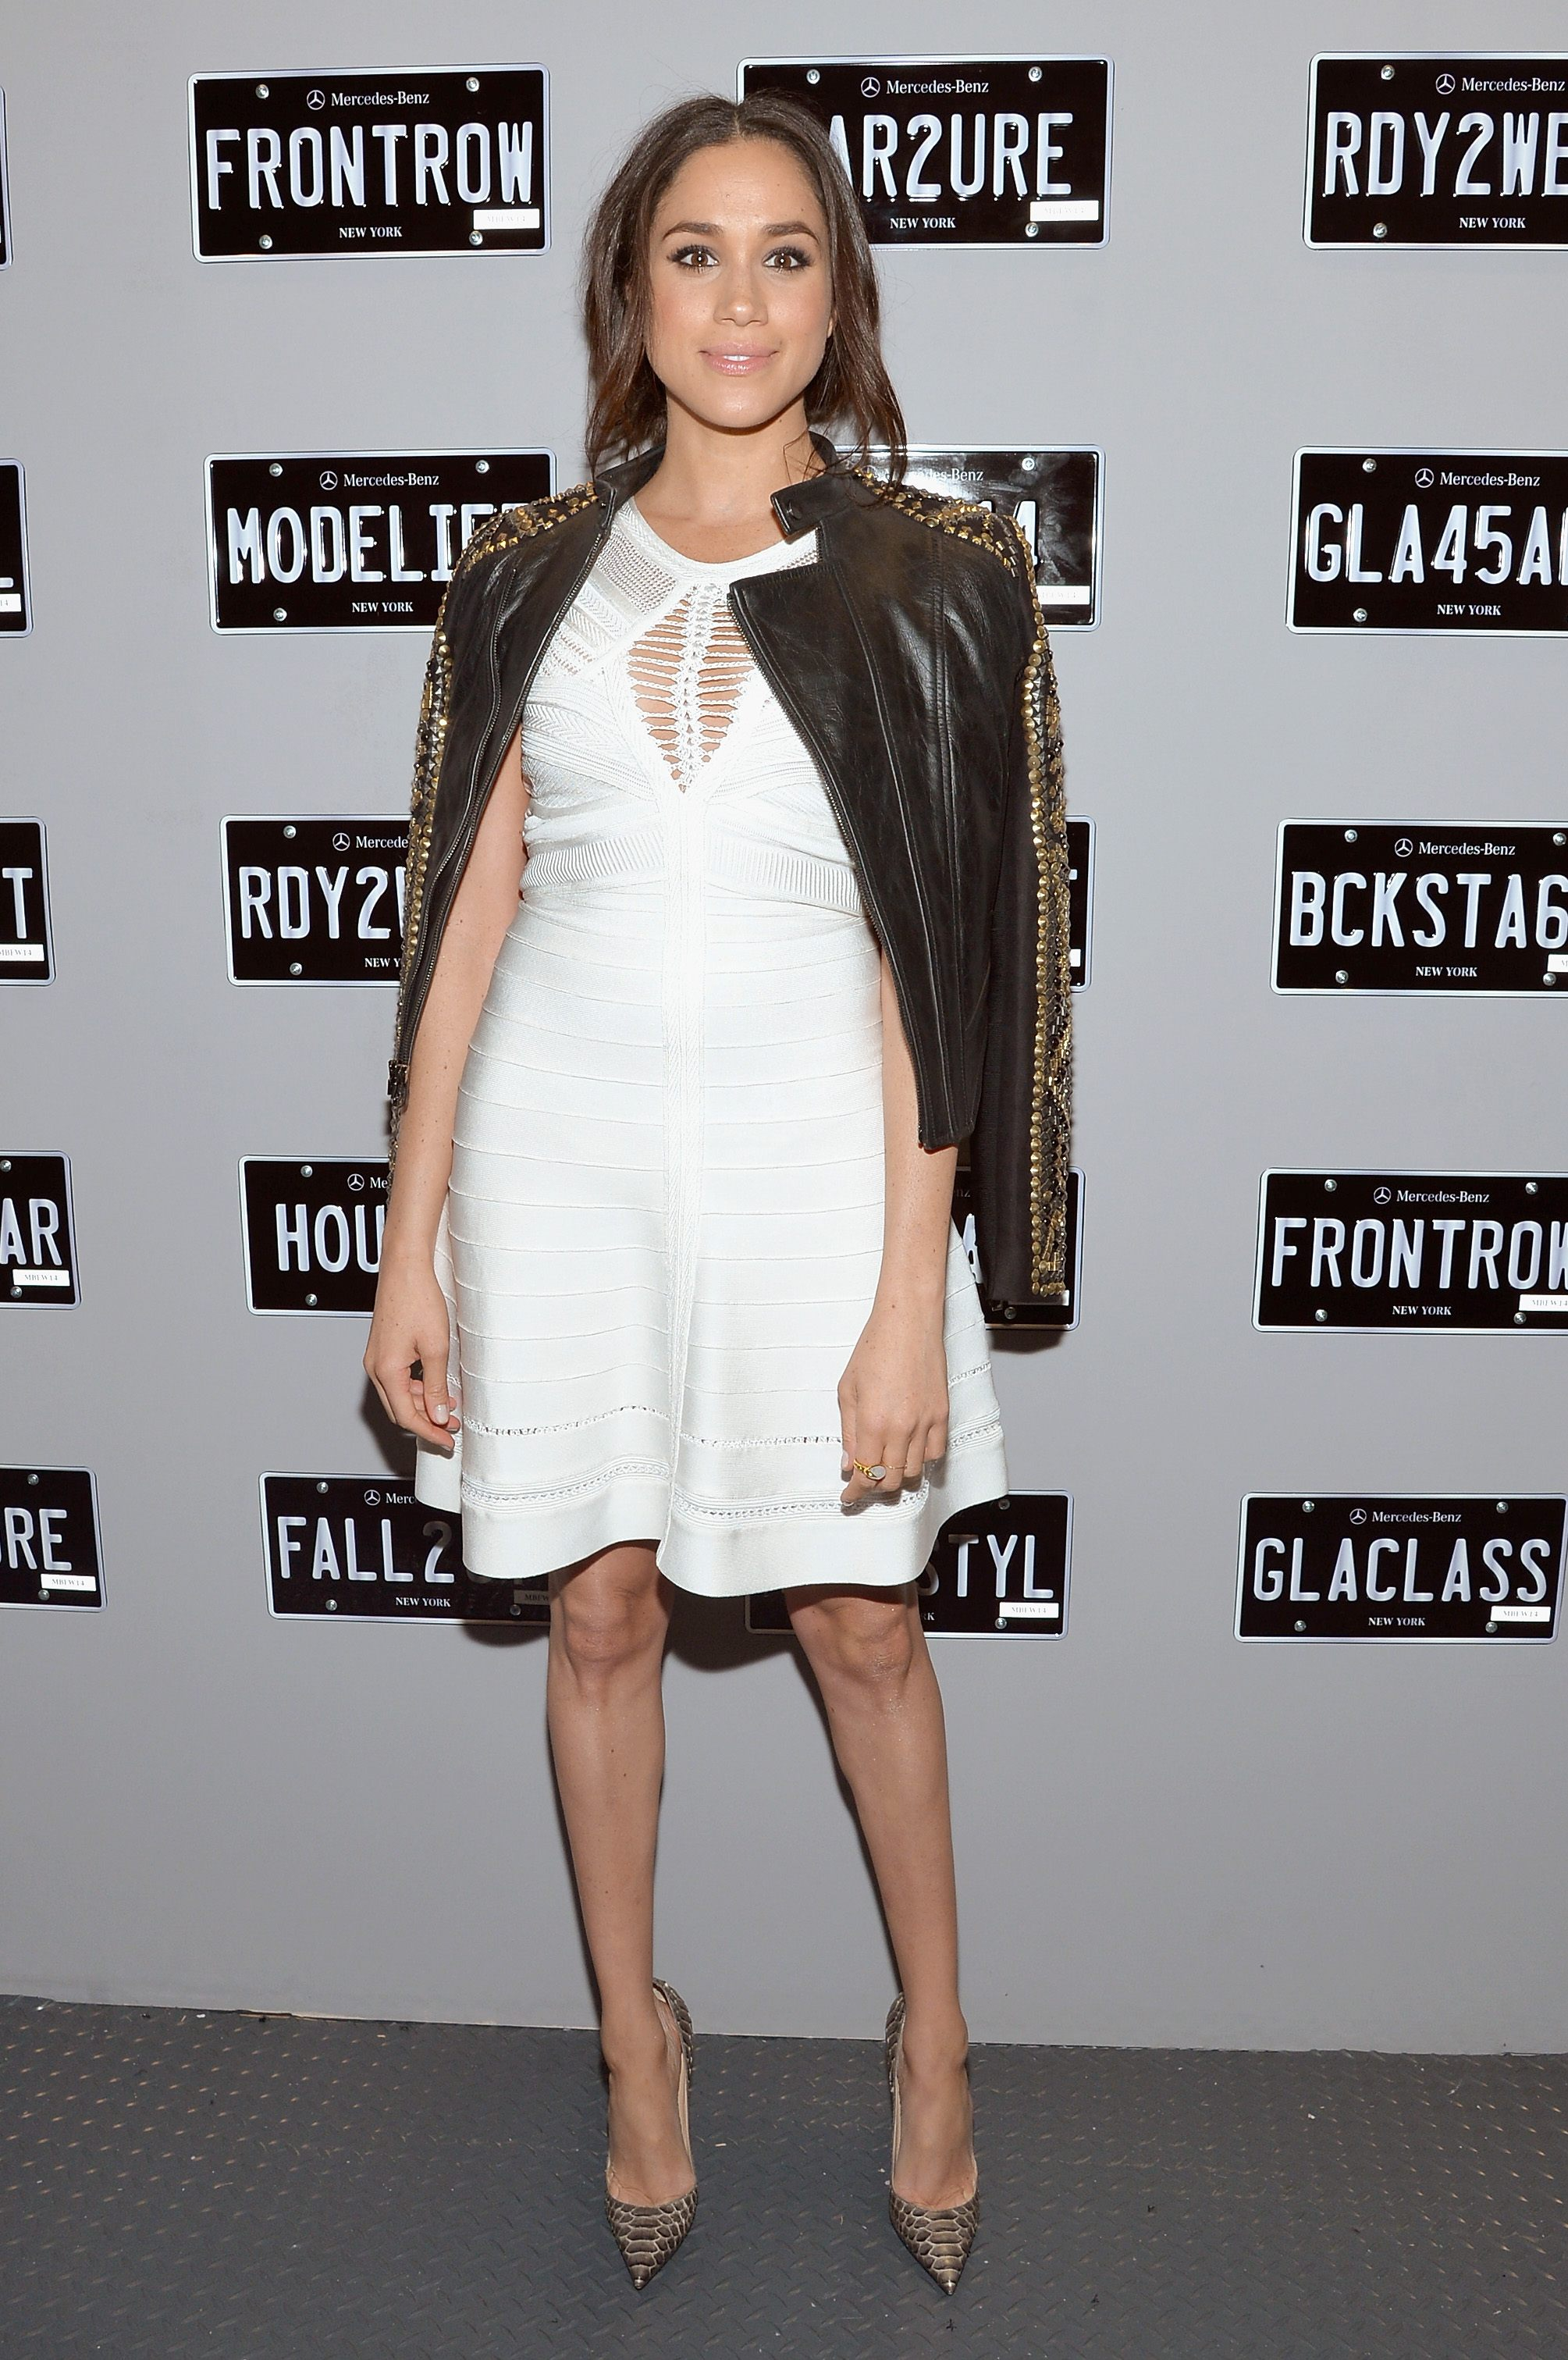 Meghan Markle posing in a white dress and black jacket.